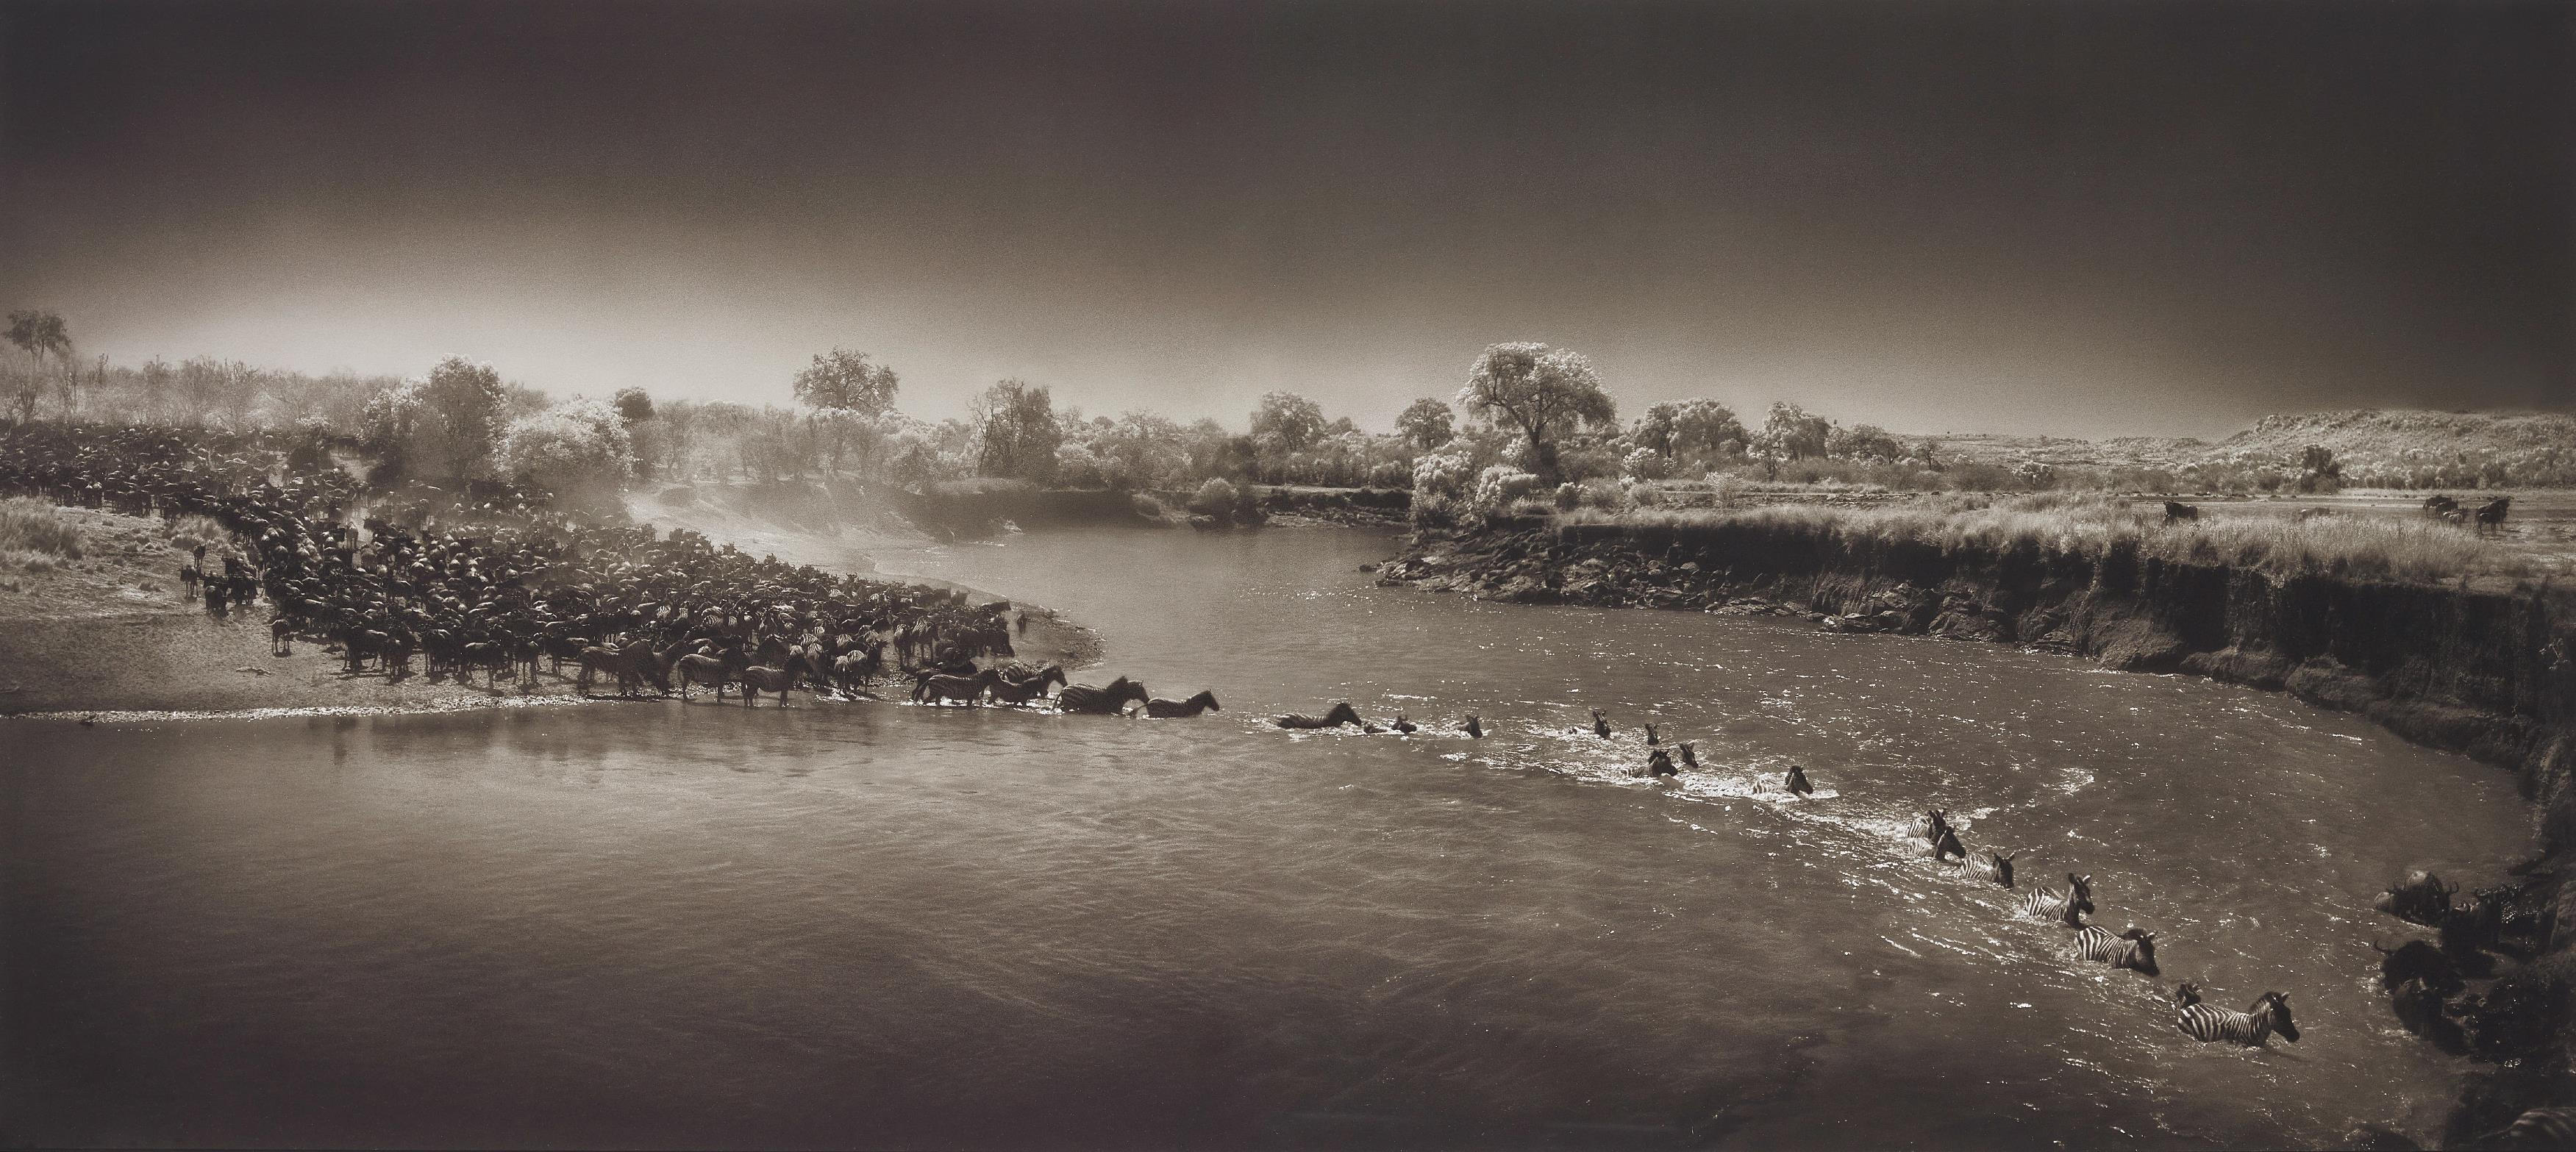 Nick Brandt-Zebras Crossing River, Maasai Mara-2006